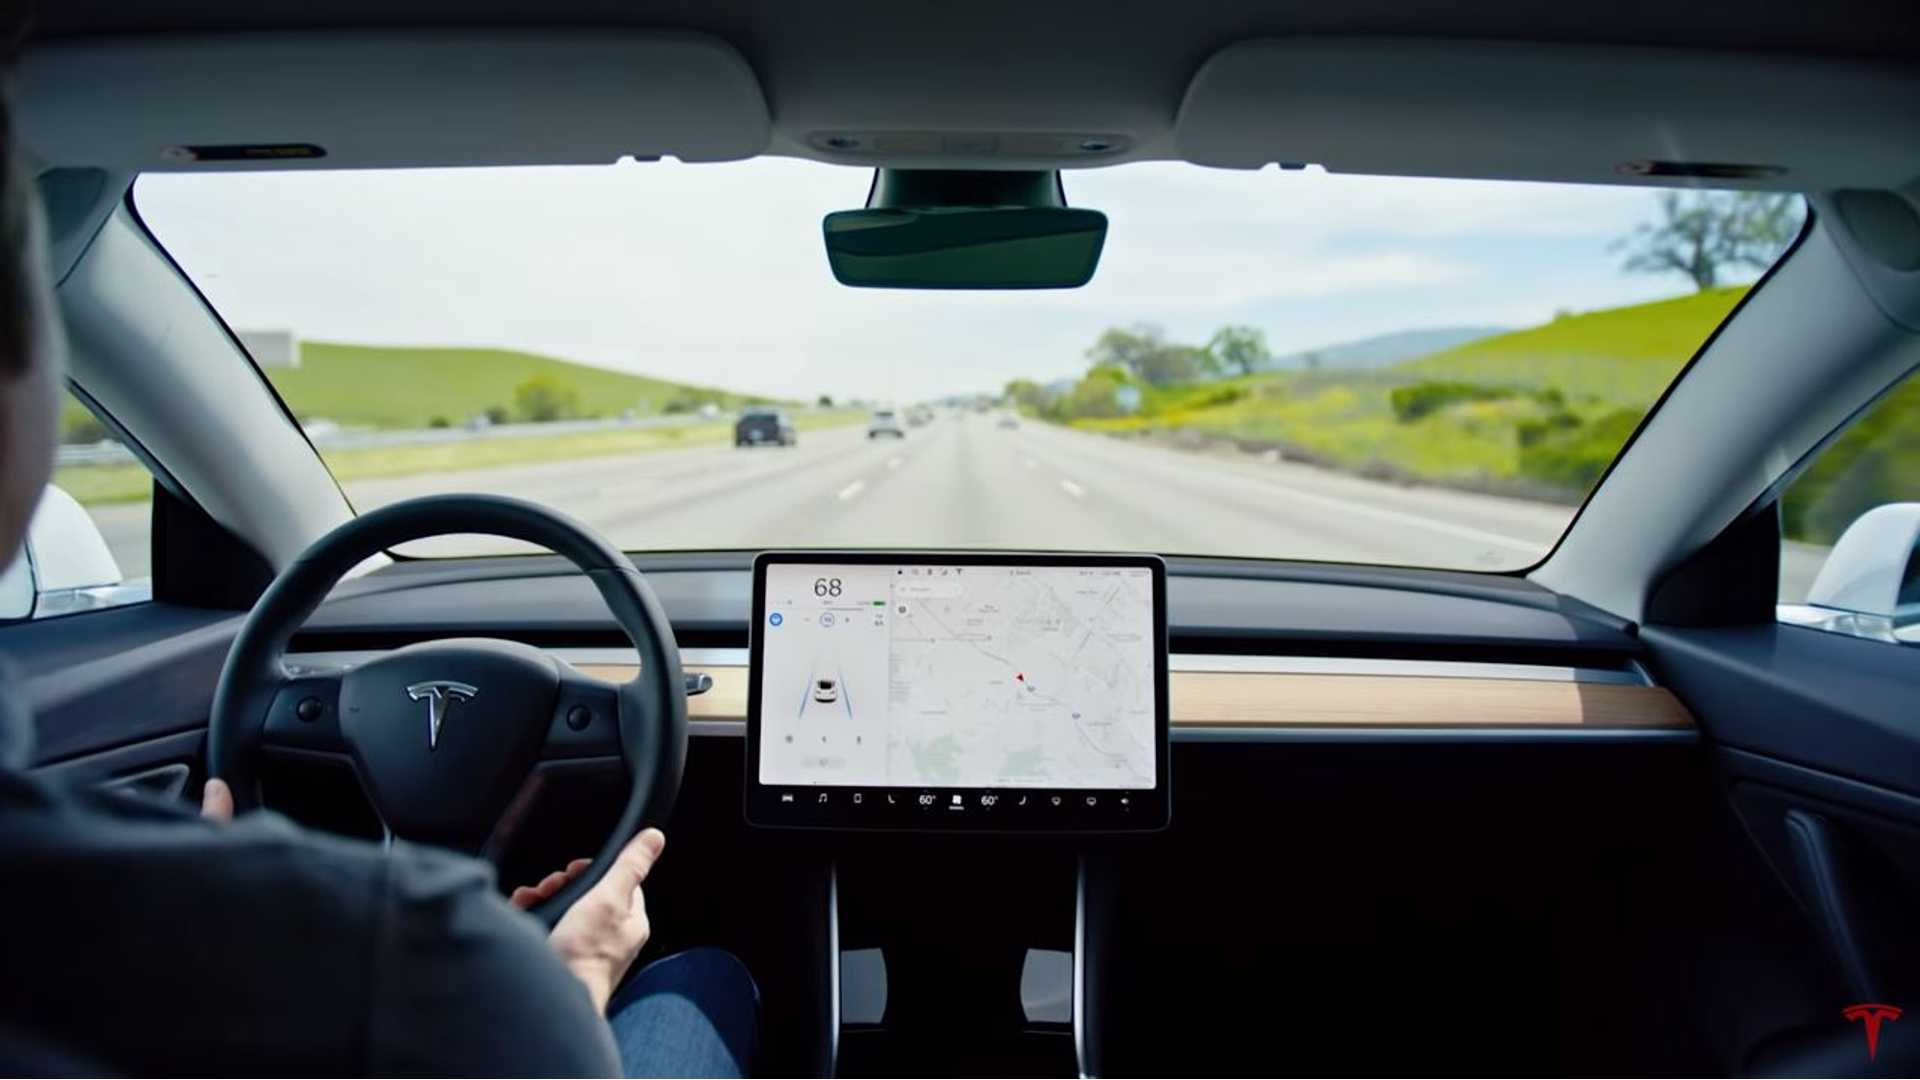 Tesla Cameras Help Driver Prove Bicycle At Fault For Insurance Claim